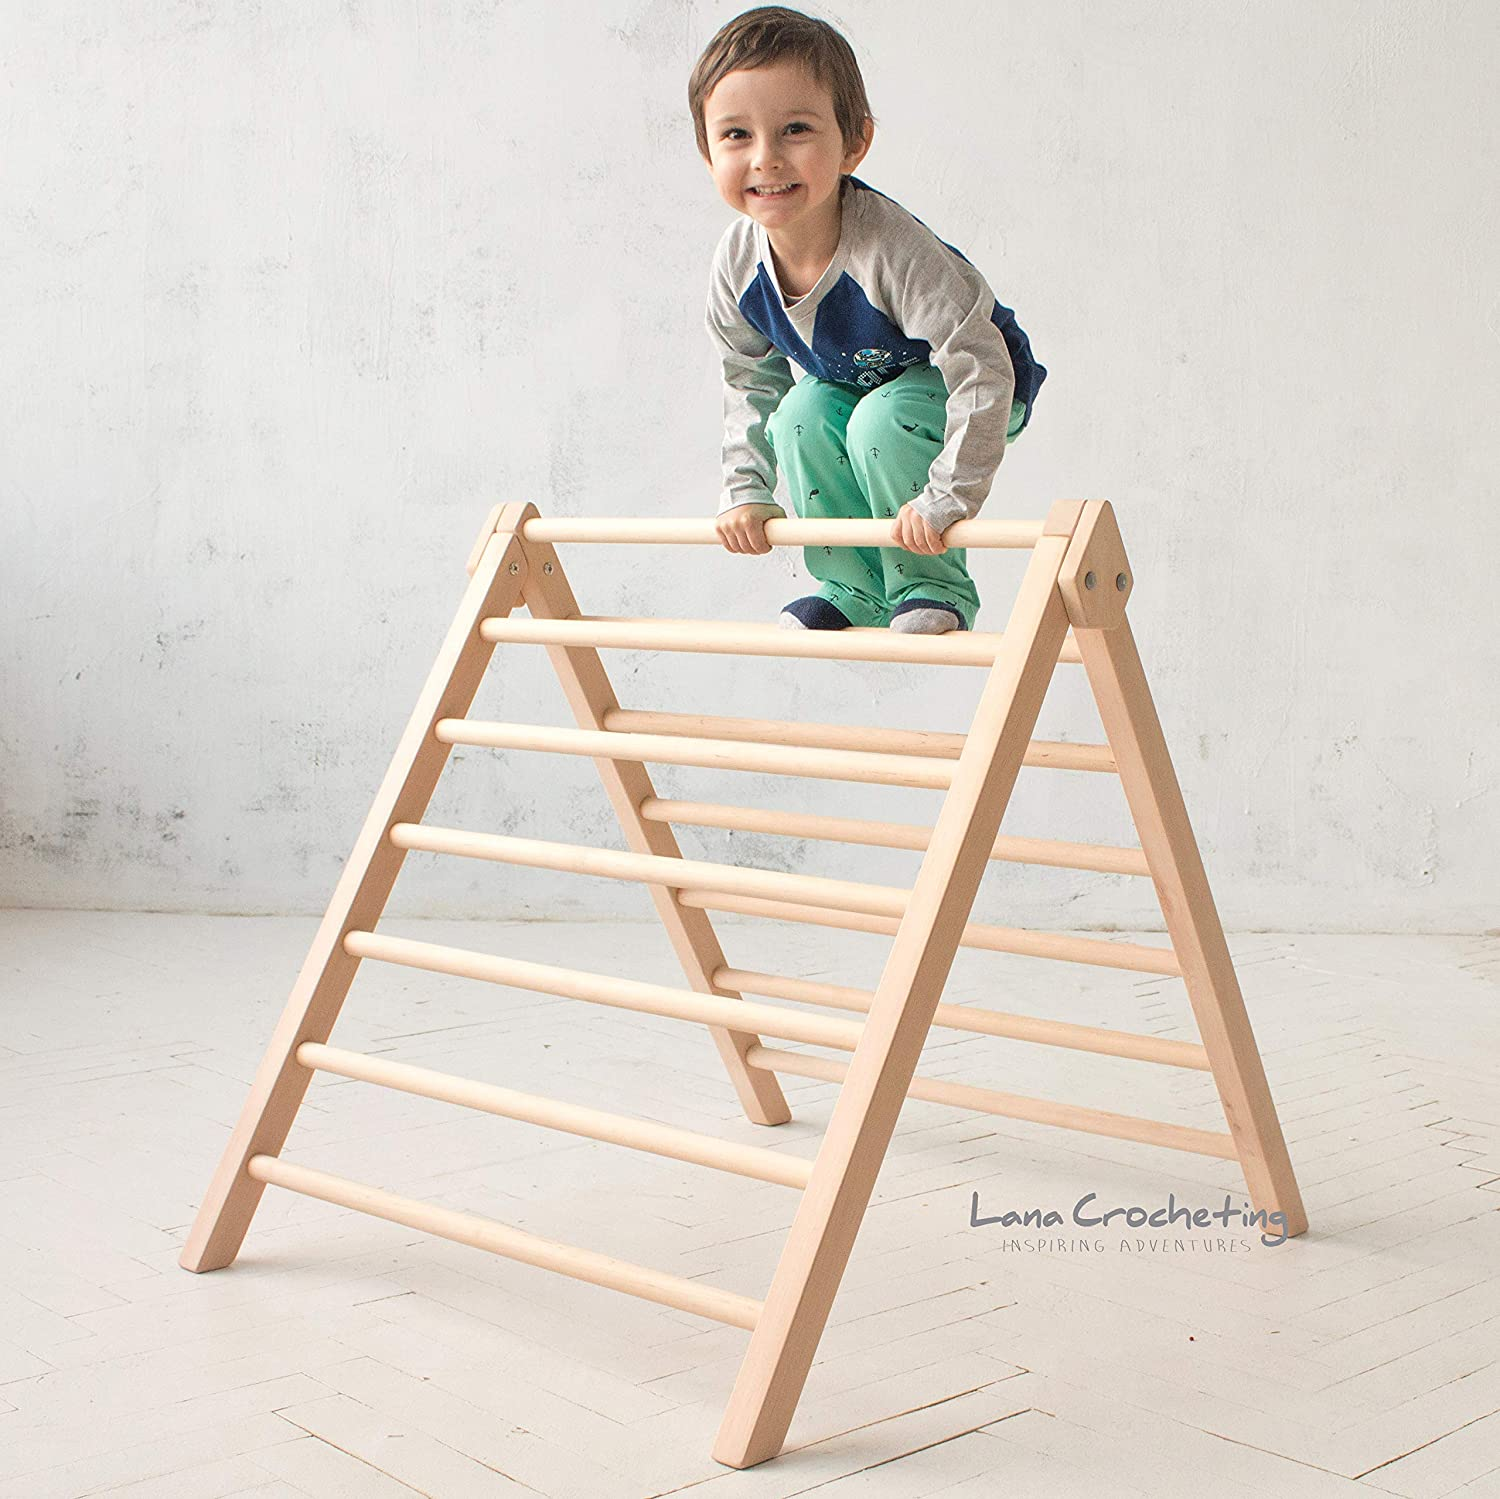 Pikler Artisan Step Triangle by LanaCrocheting. Climbing ladder for kids, foldable triangle. Children's Wooden Climbing Structure. Montessori Toddler Natural Development.